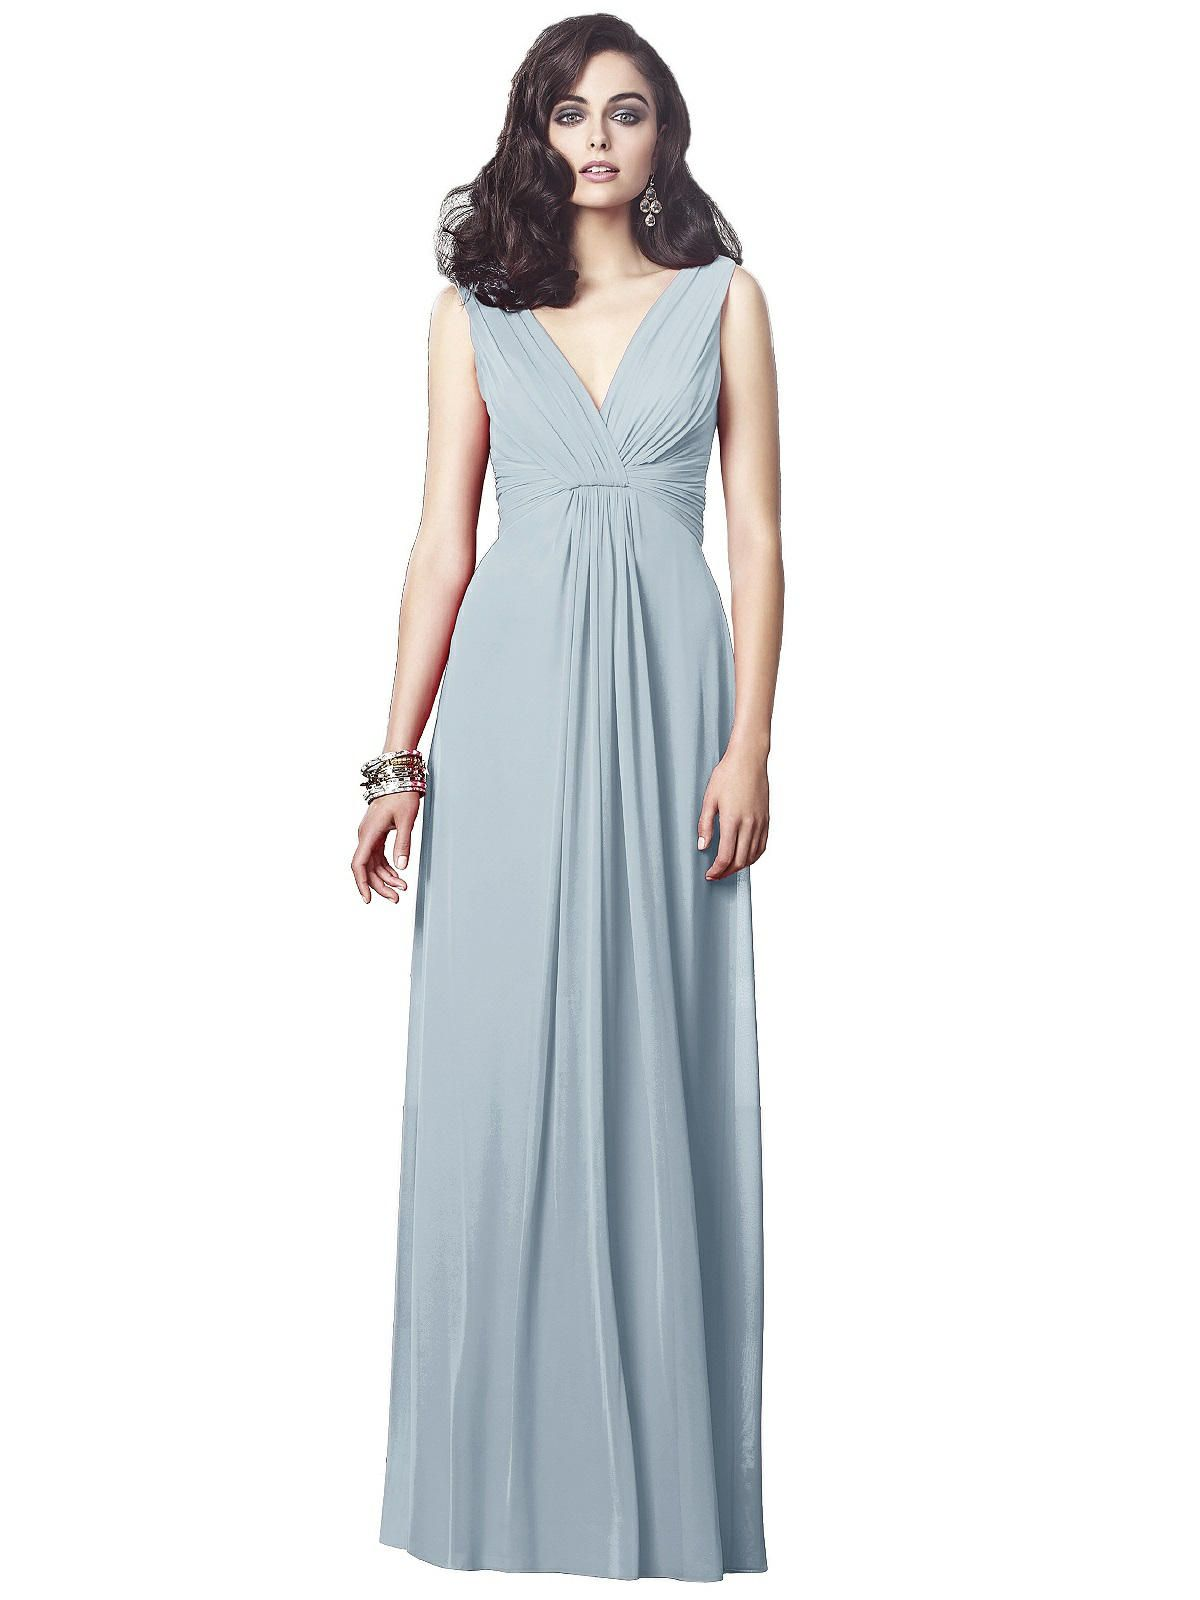 c8793e86410 Dessy Collection Style 2907 in 2019